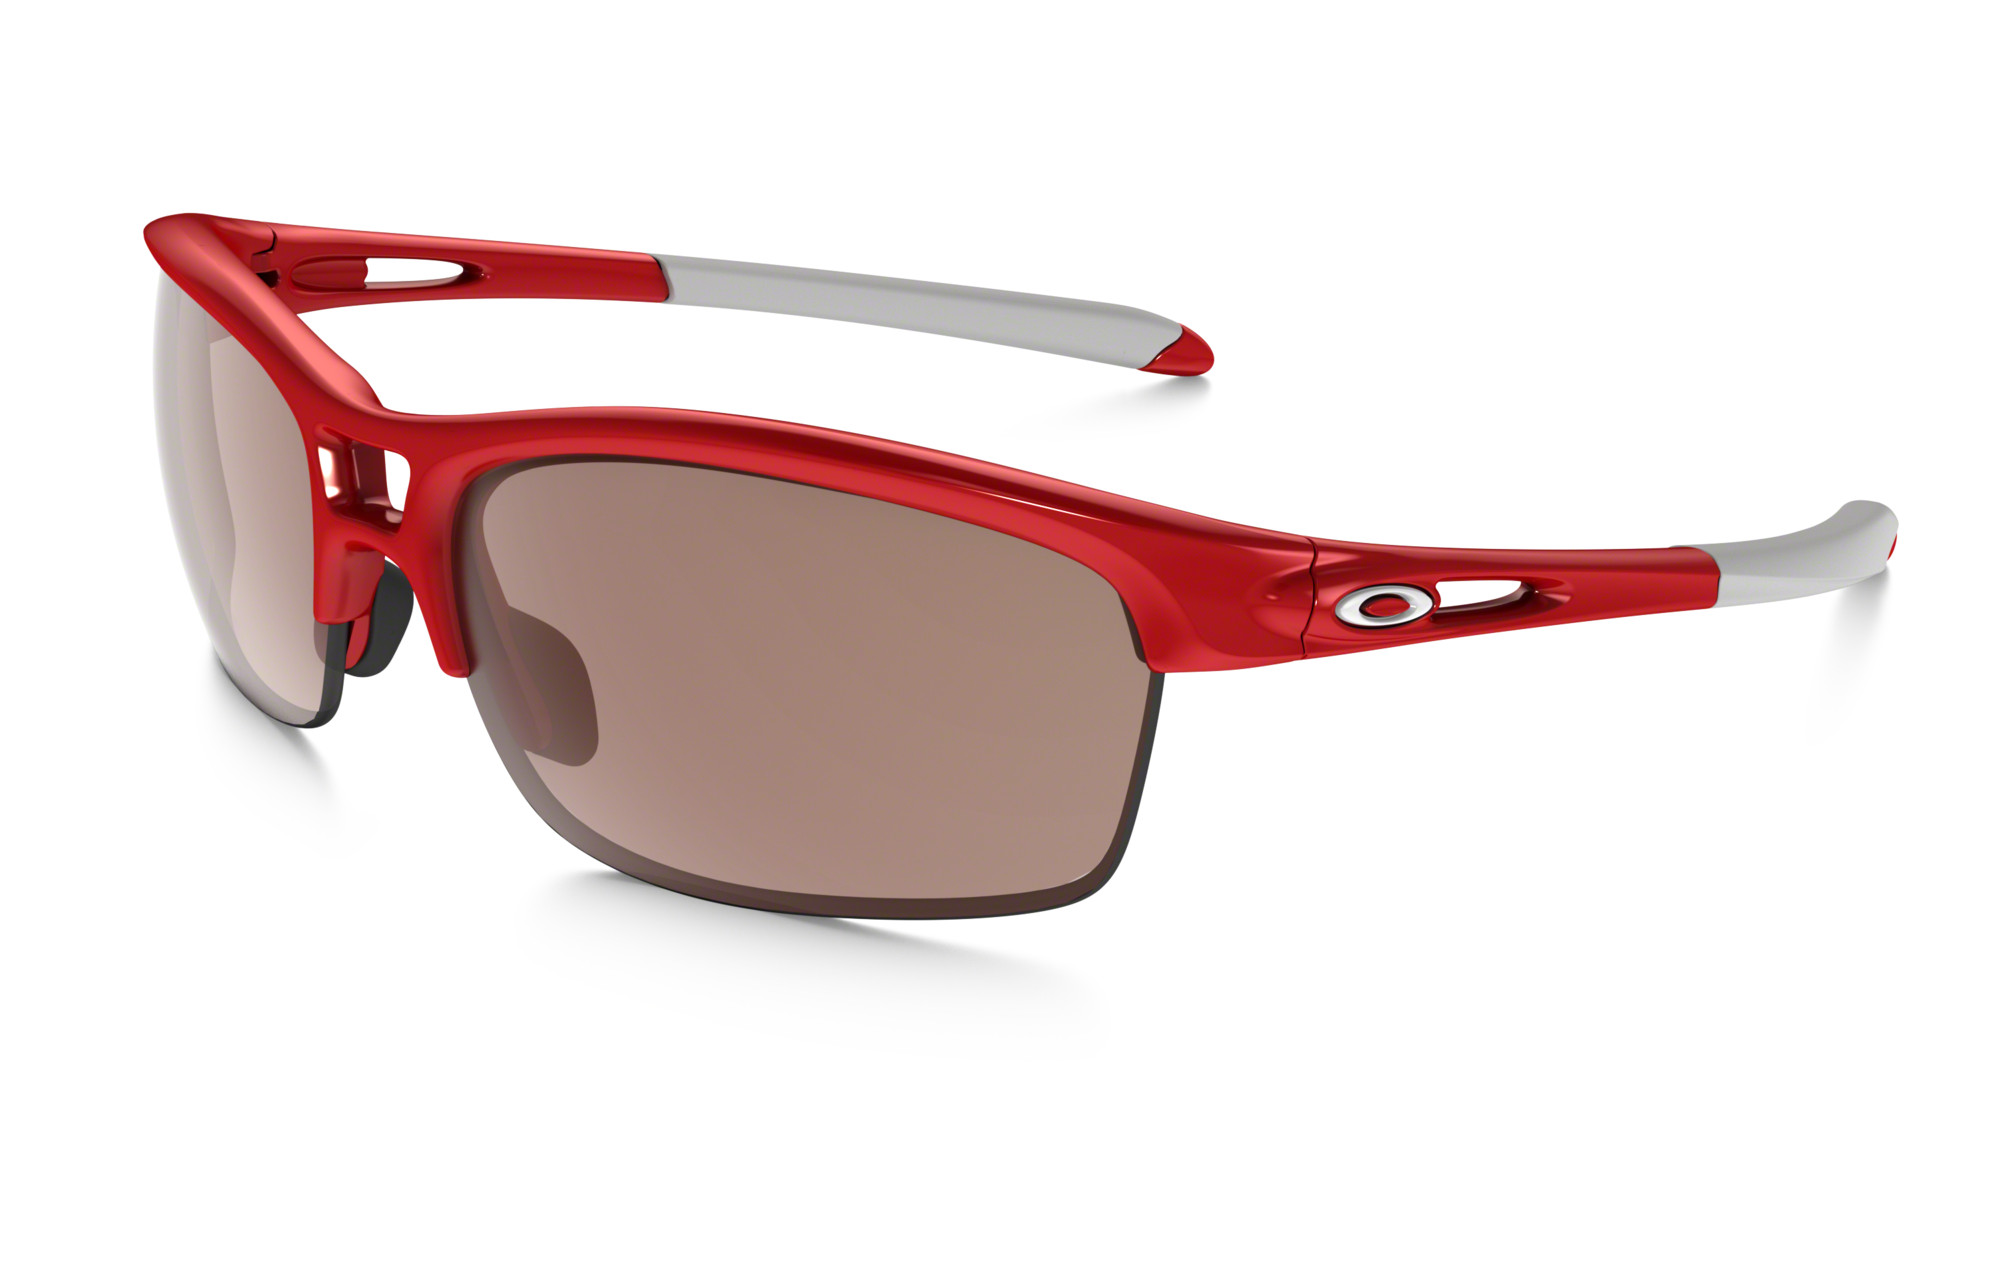 Oakley Jupiter Squared Replacement Parts